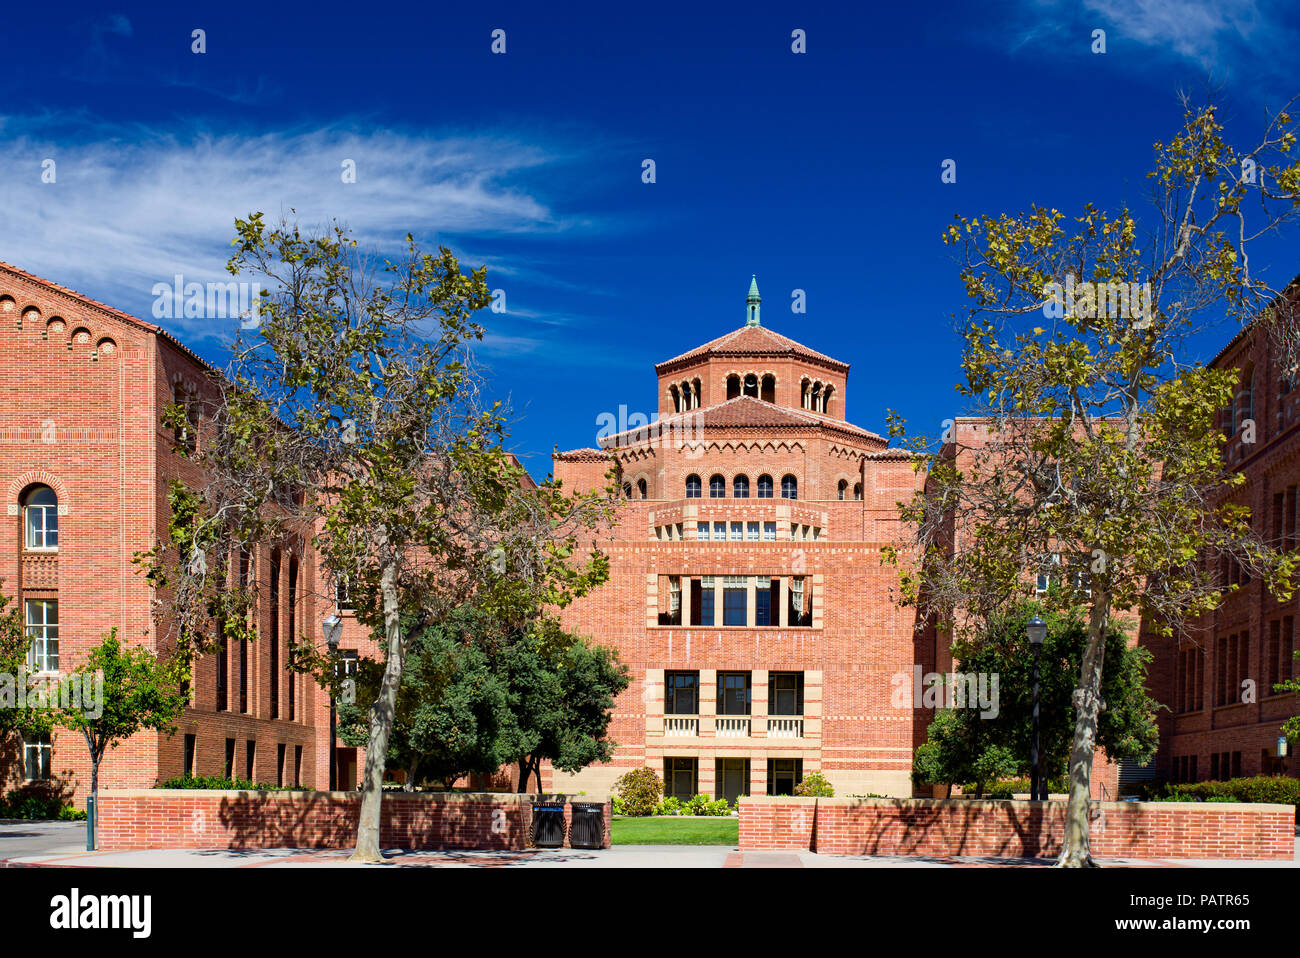 LOS ANGELES, CA/USA - OCTOBER 4, 2014: Powell Library on the campus of UCLA. - Stock Image